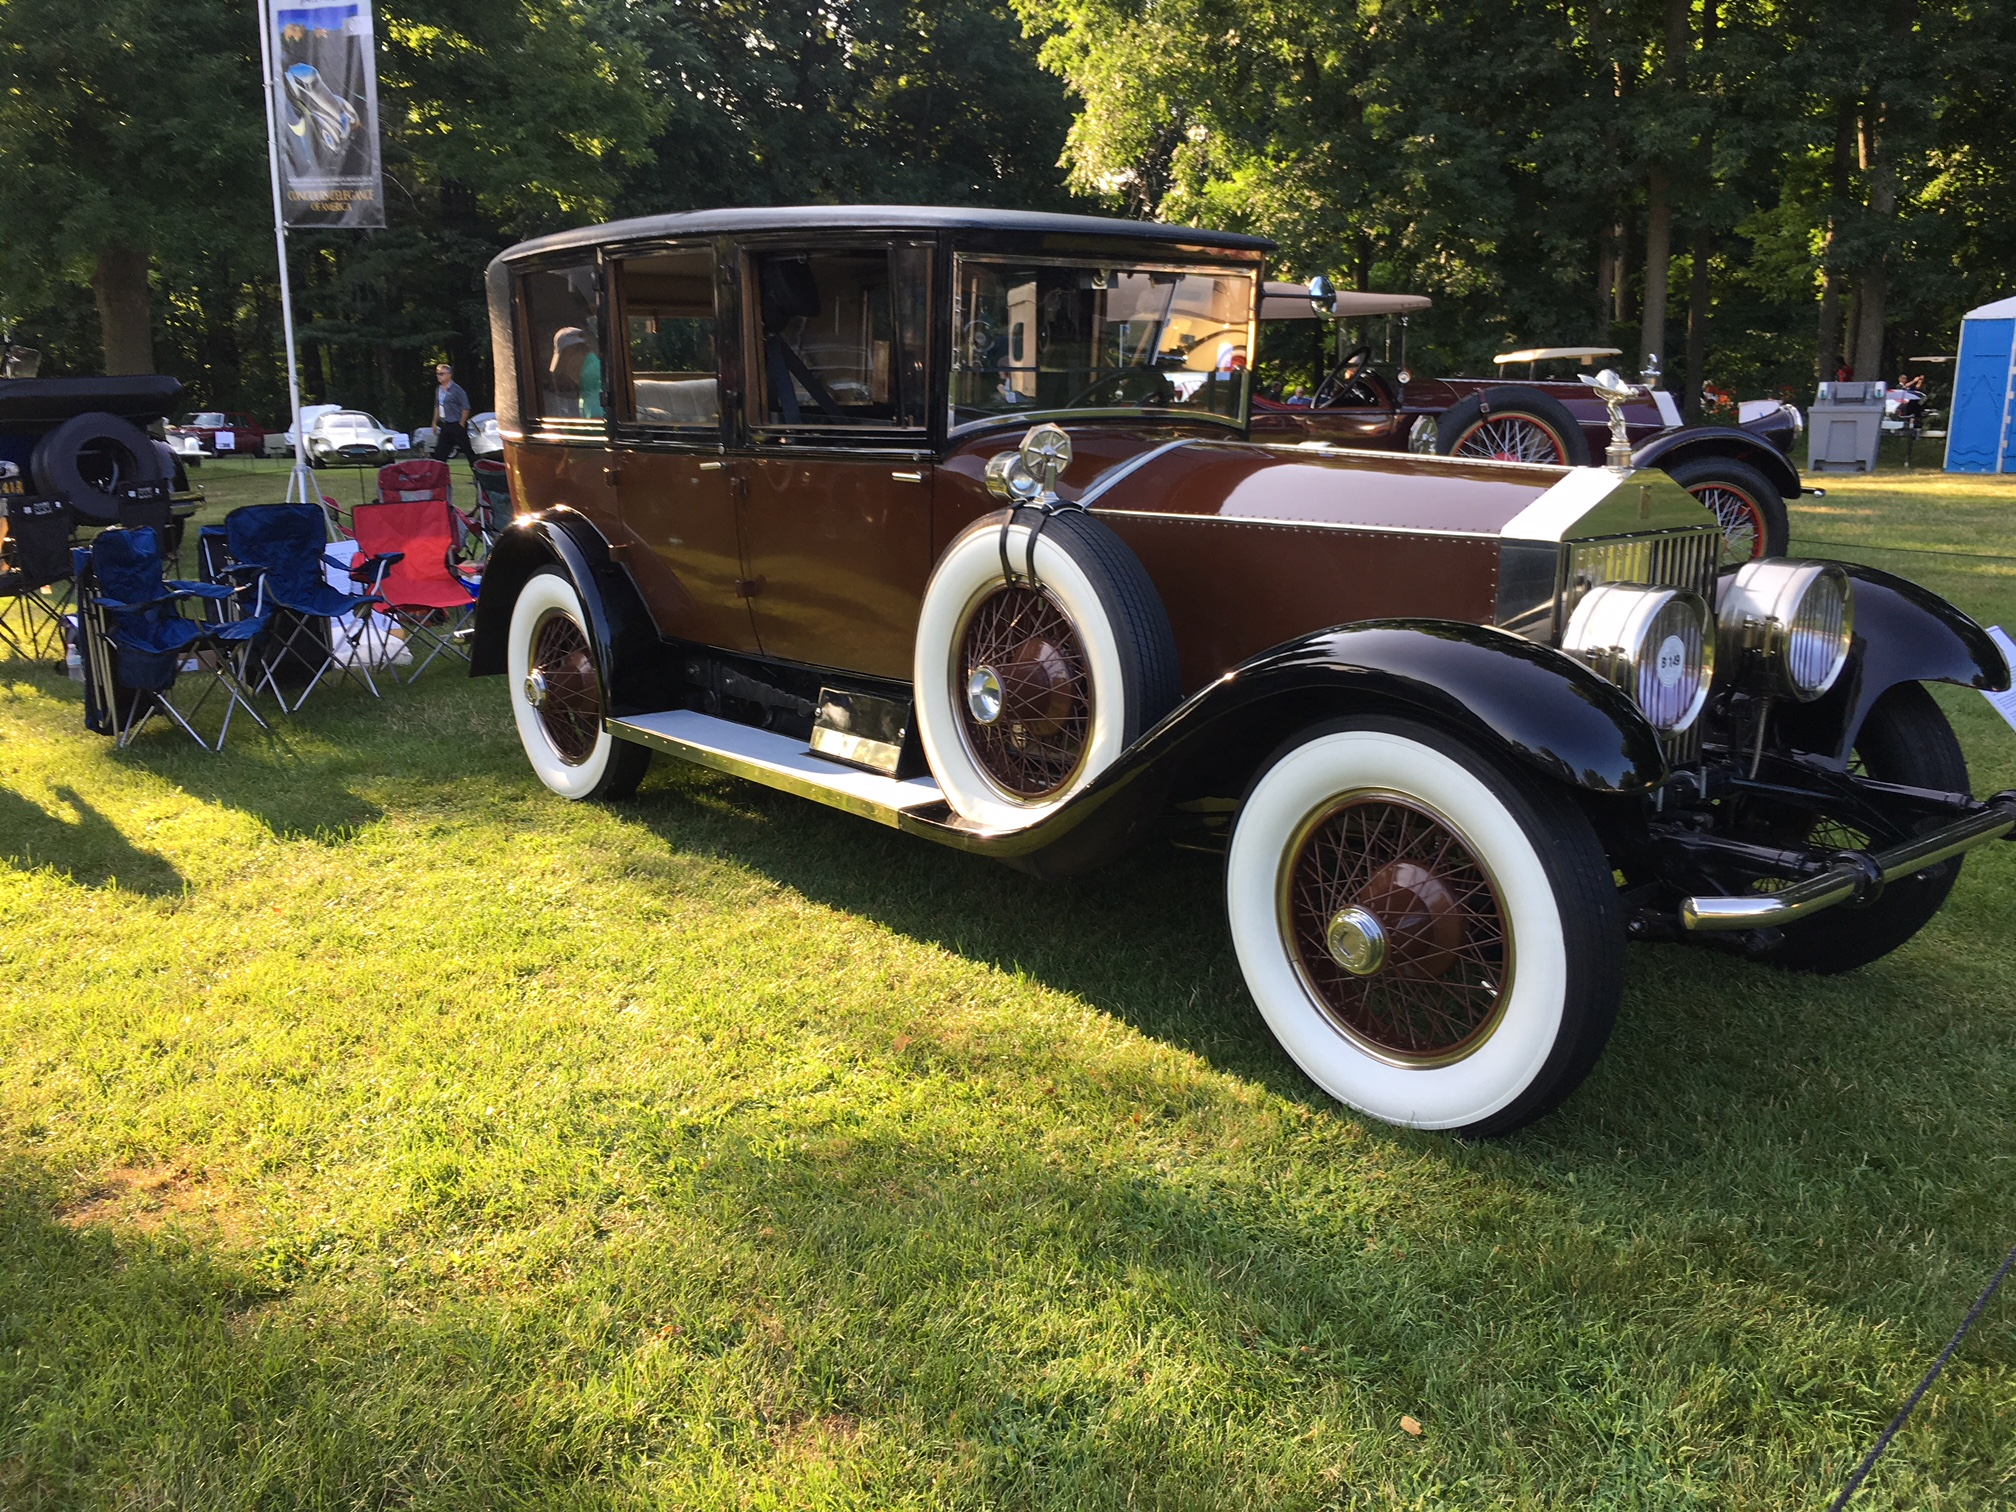 1925 Rolls-Royce Silver Ghost Buckingham Limousine, owned by SSR member Wendell Smith